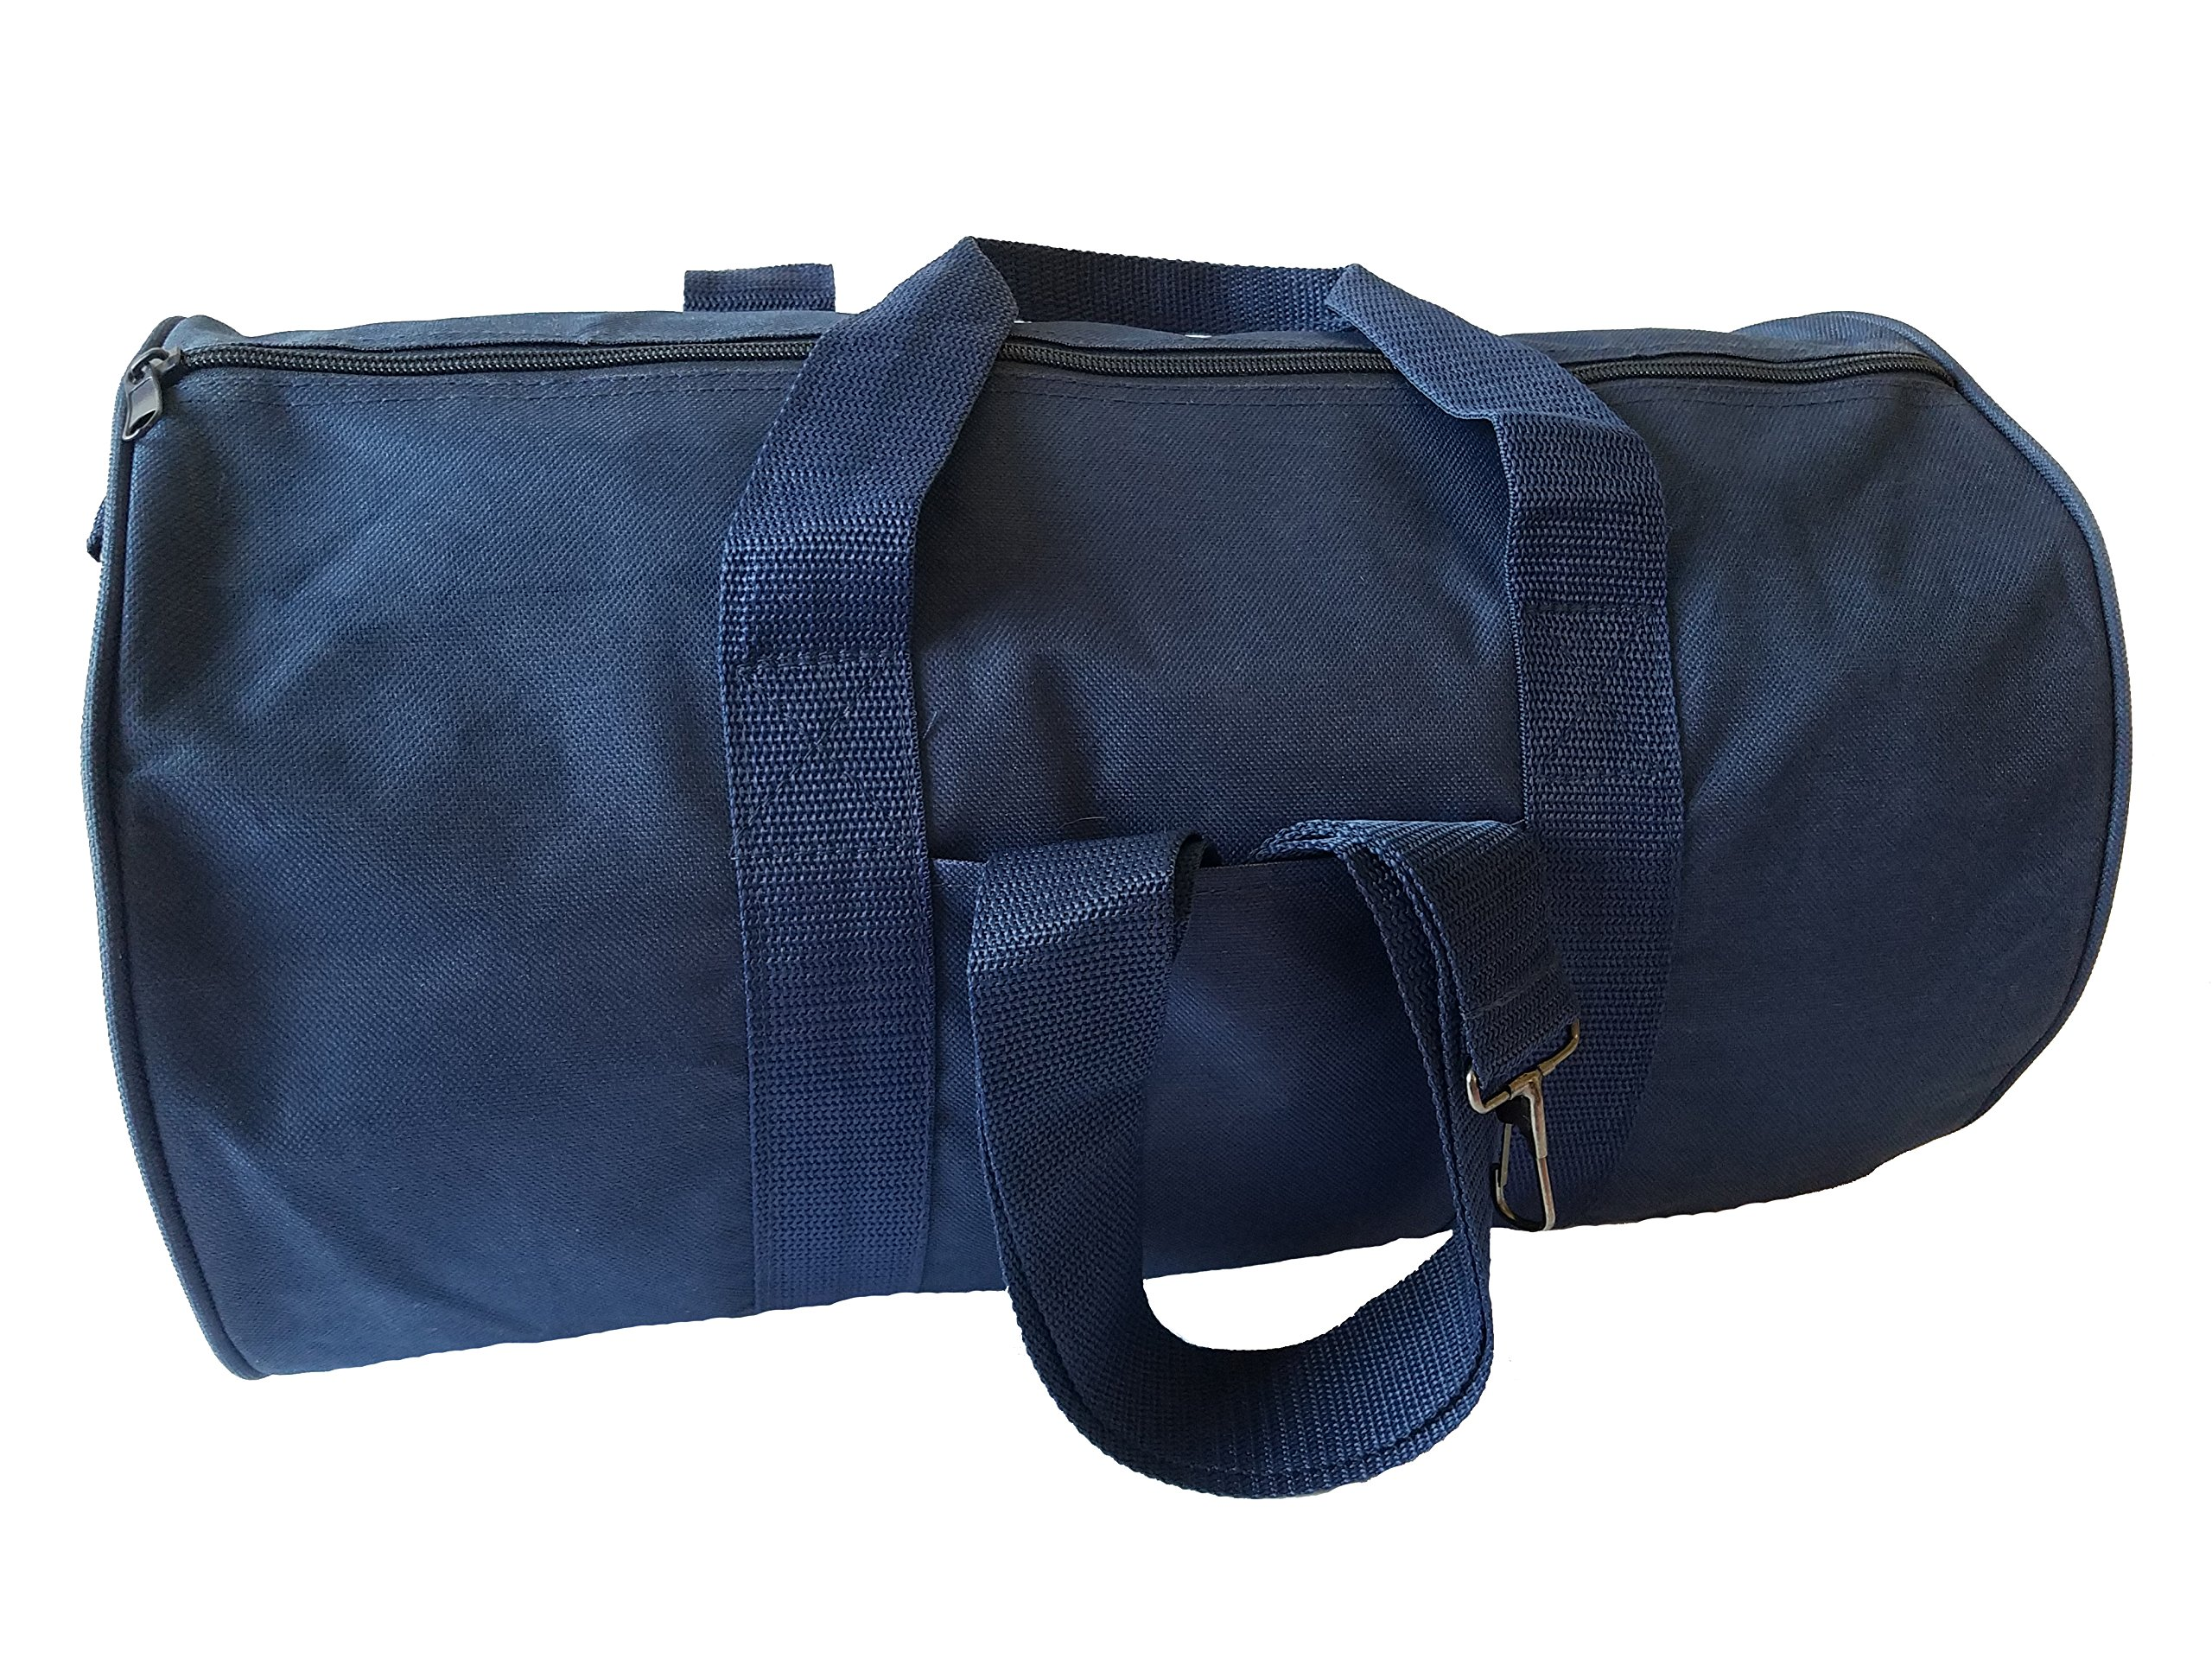 ImpecGear Round Duffel Sports Bags, Travel Gym Fitness Bag. (Navy) by ImpecGear (Image #3)